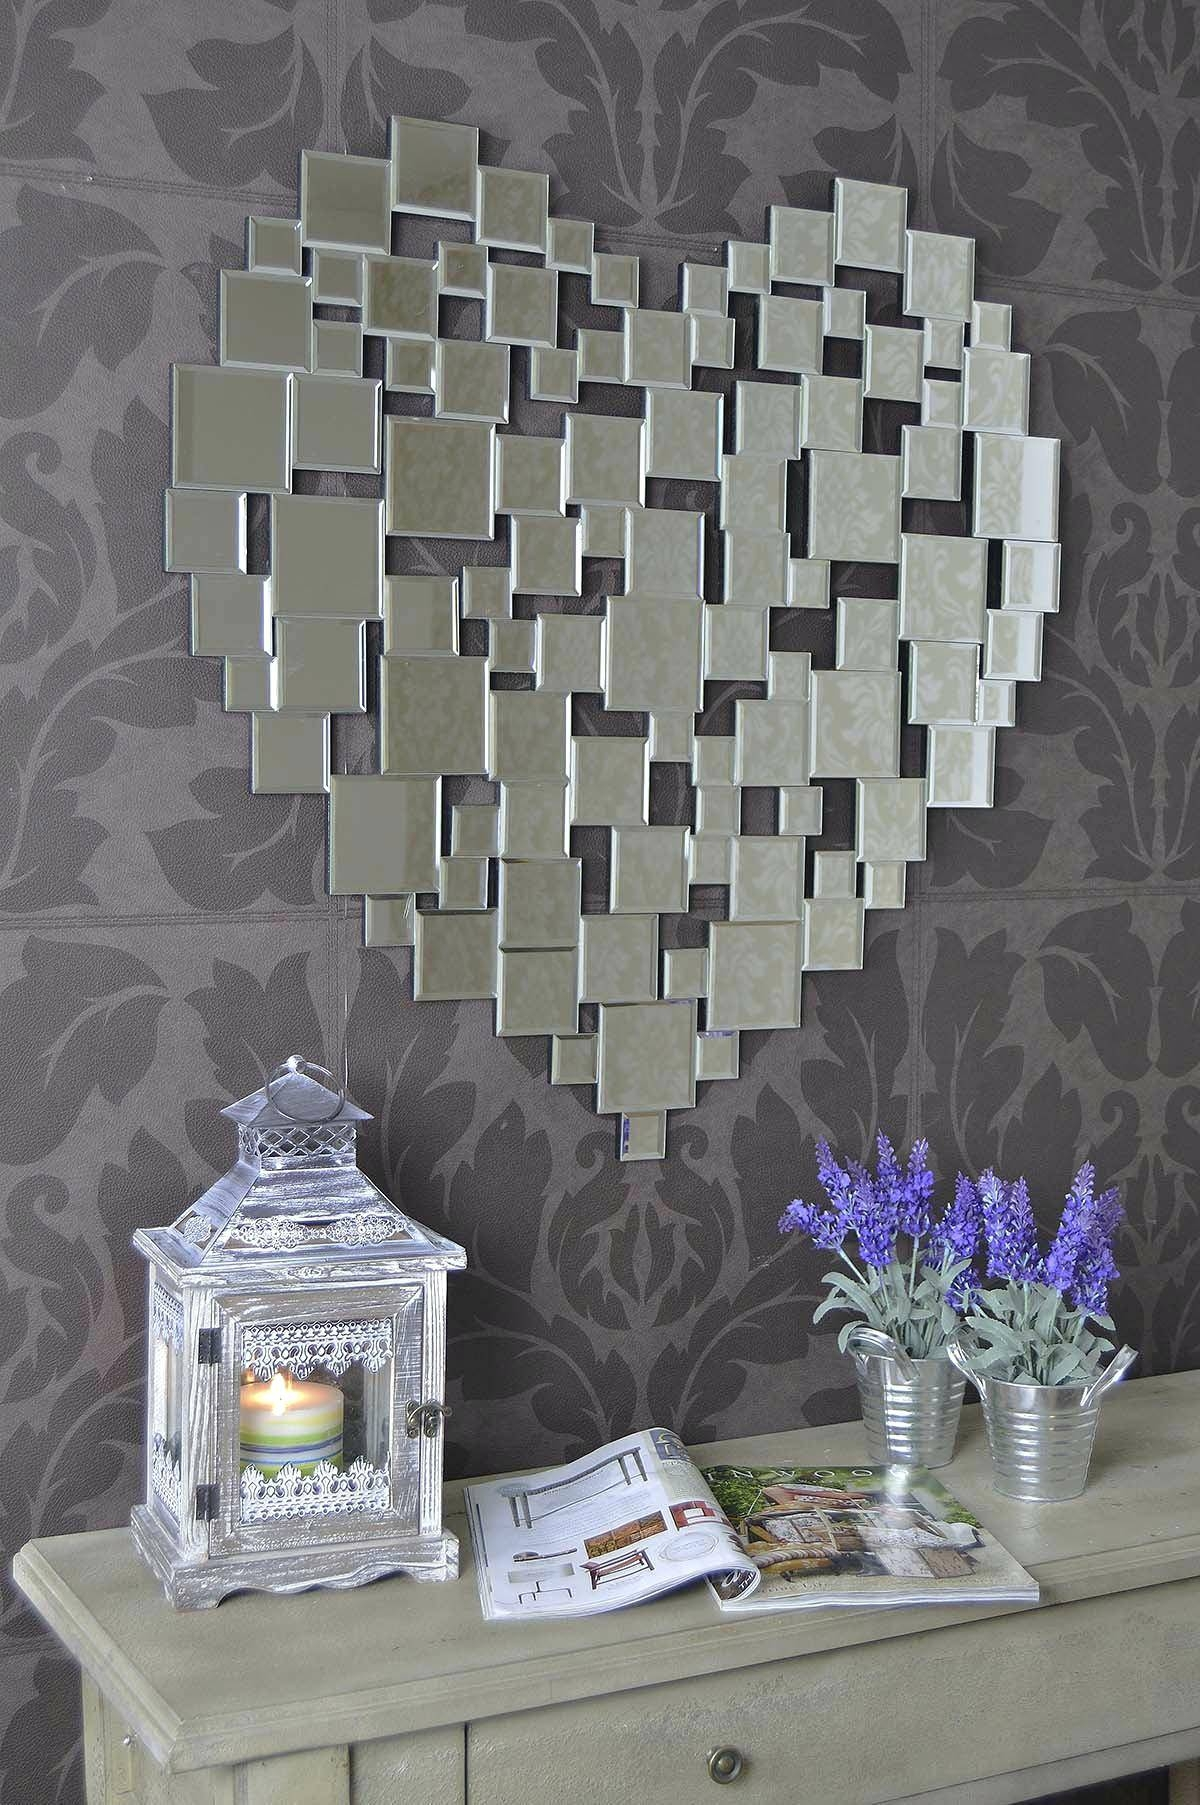 Heart Shape Venetian Wall Mirror 2Ft8 80Cm Lightbox Moreviewlarge with Venetian Heart Mirrors (Image 13 of 25)